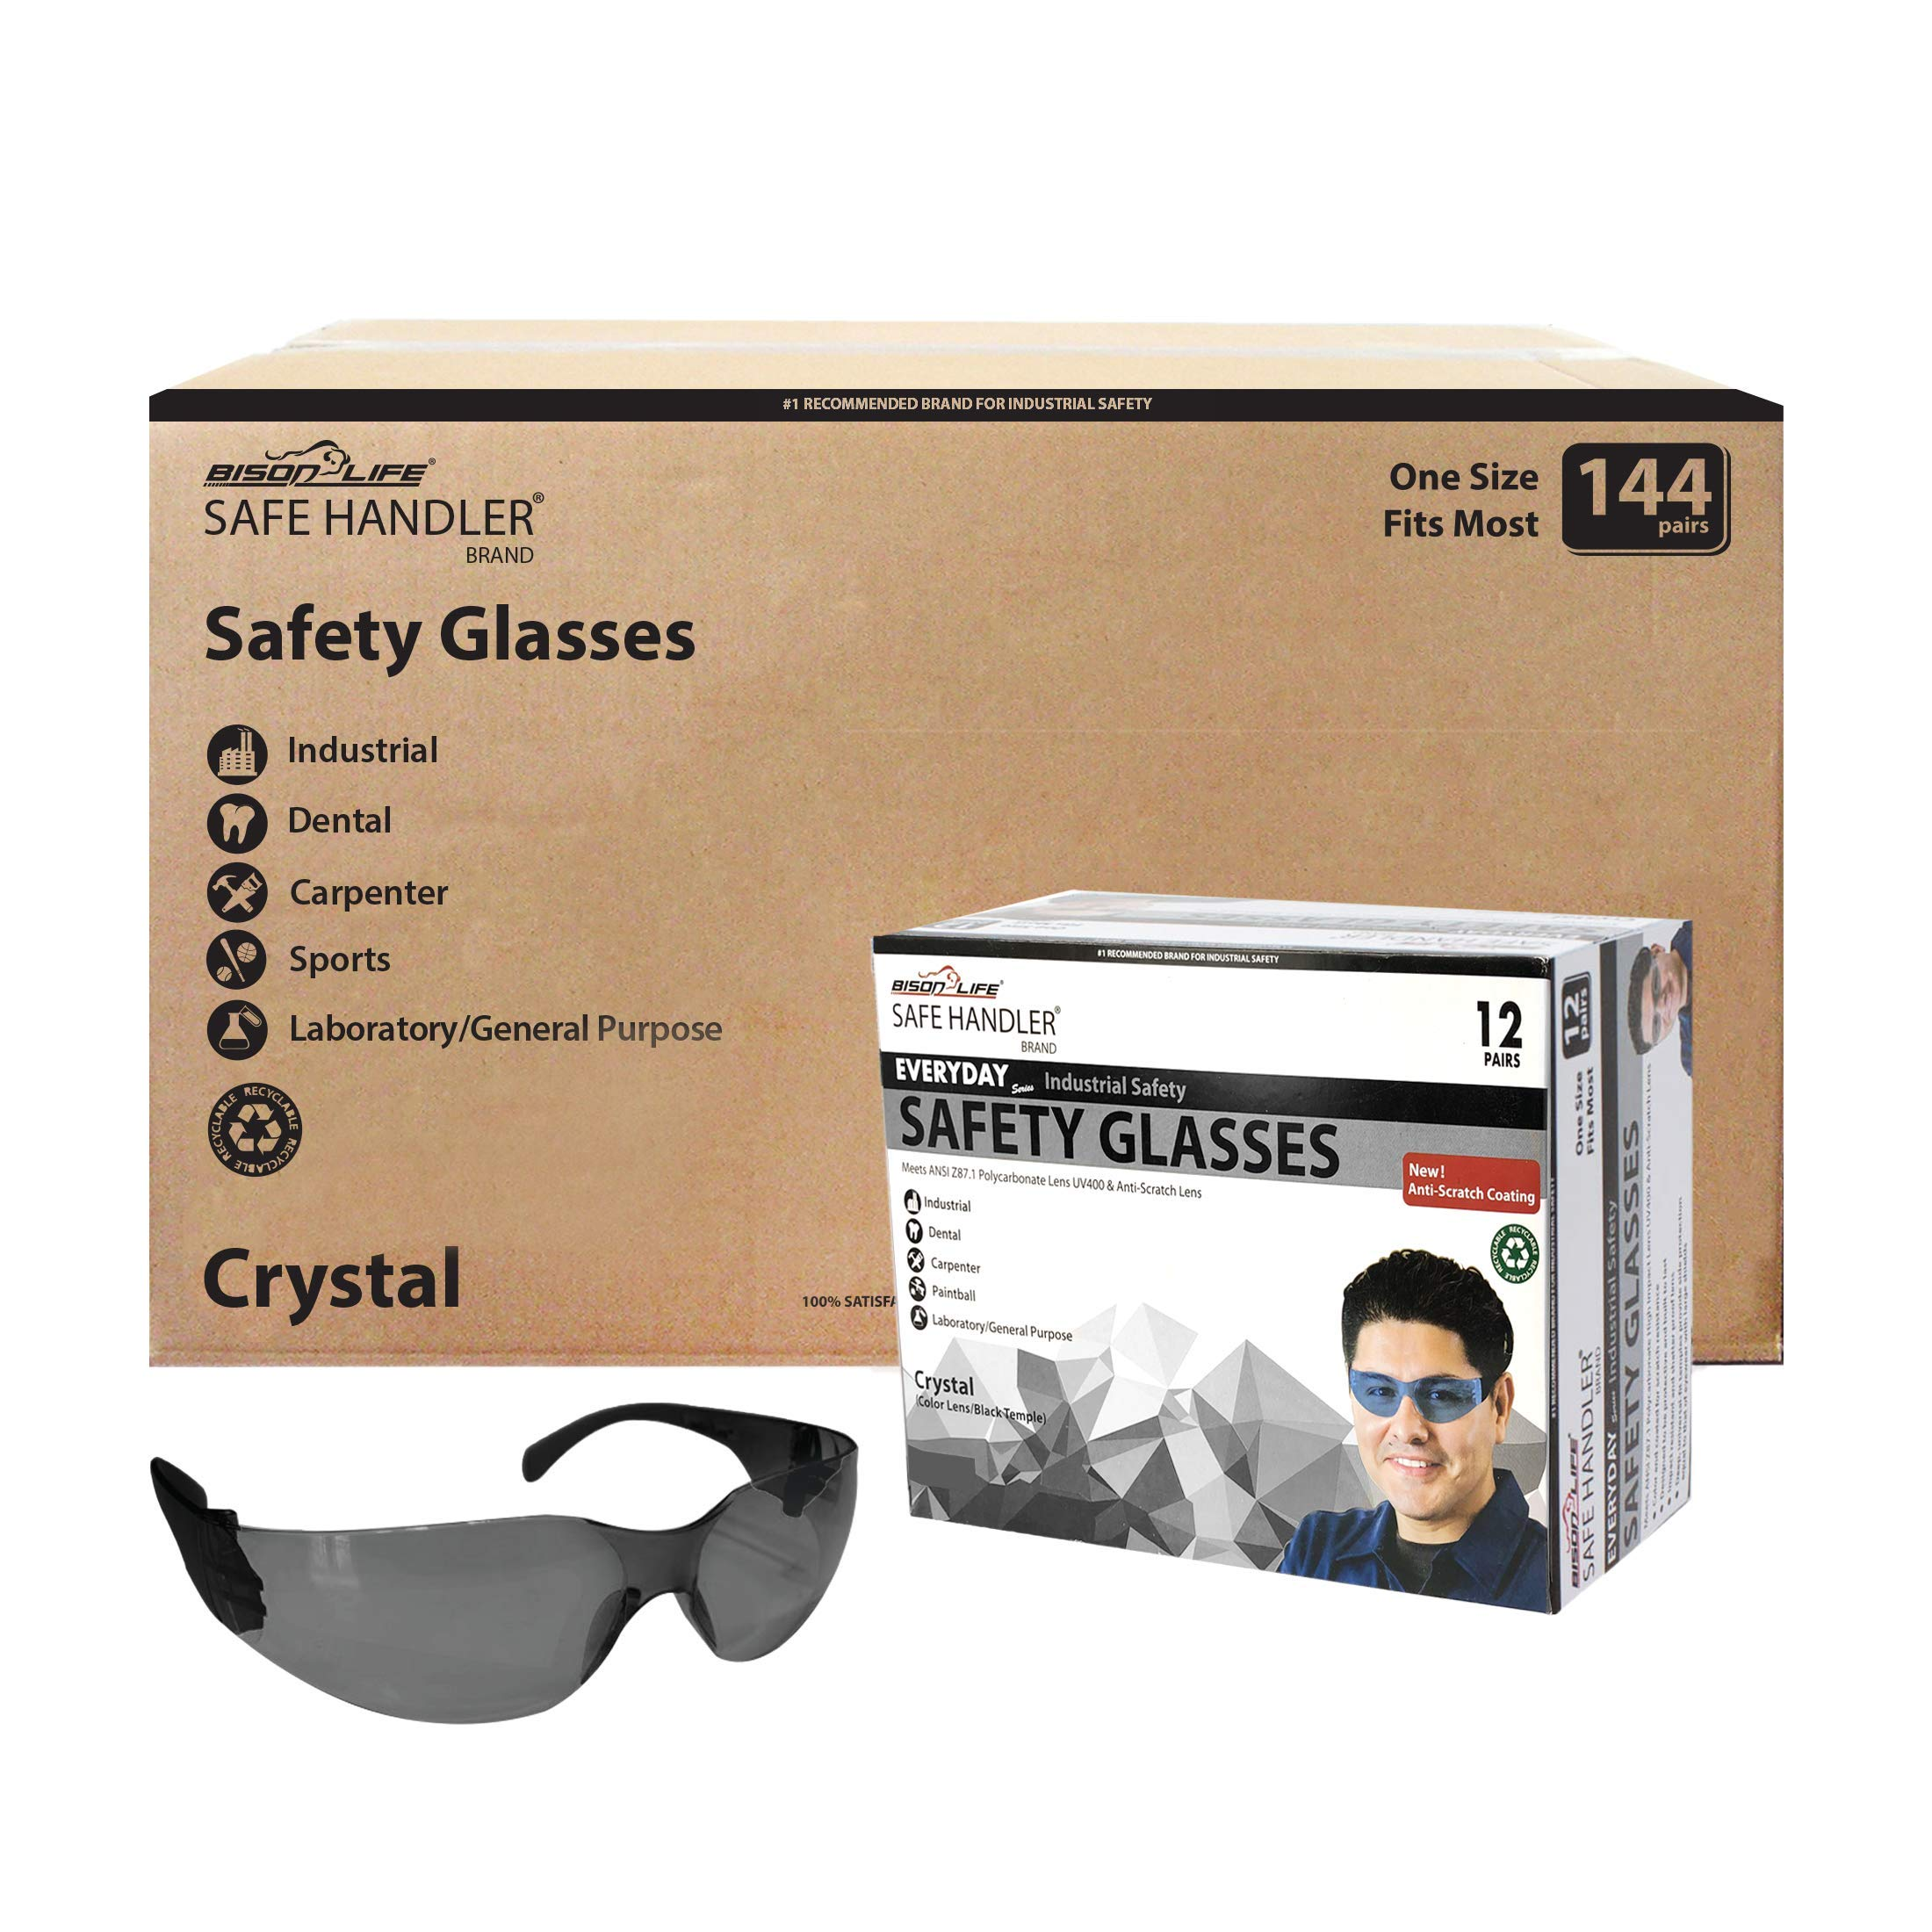 SAFE HANDLER Protective Safety Glasses, Black Polycarbonate Impact and Ballistic Resistant Lens - Black Temple (Case of 12 Boxes, 144 Pairs Total) by Safe Handler